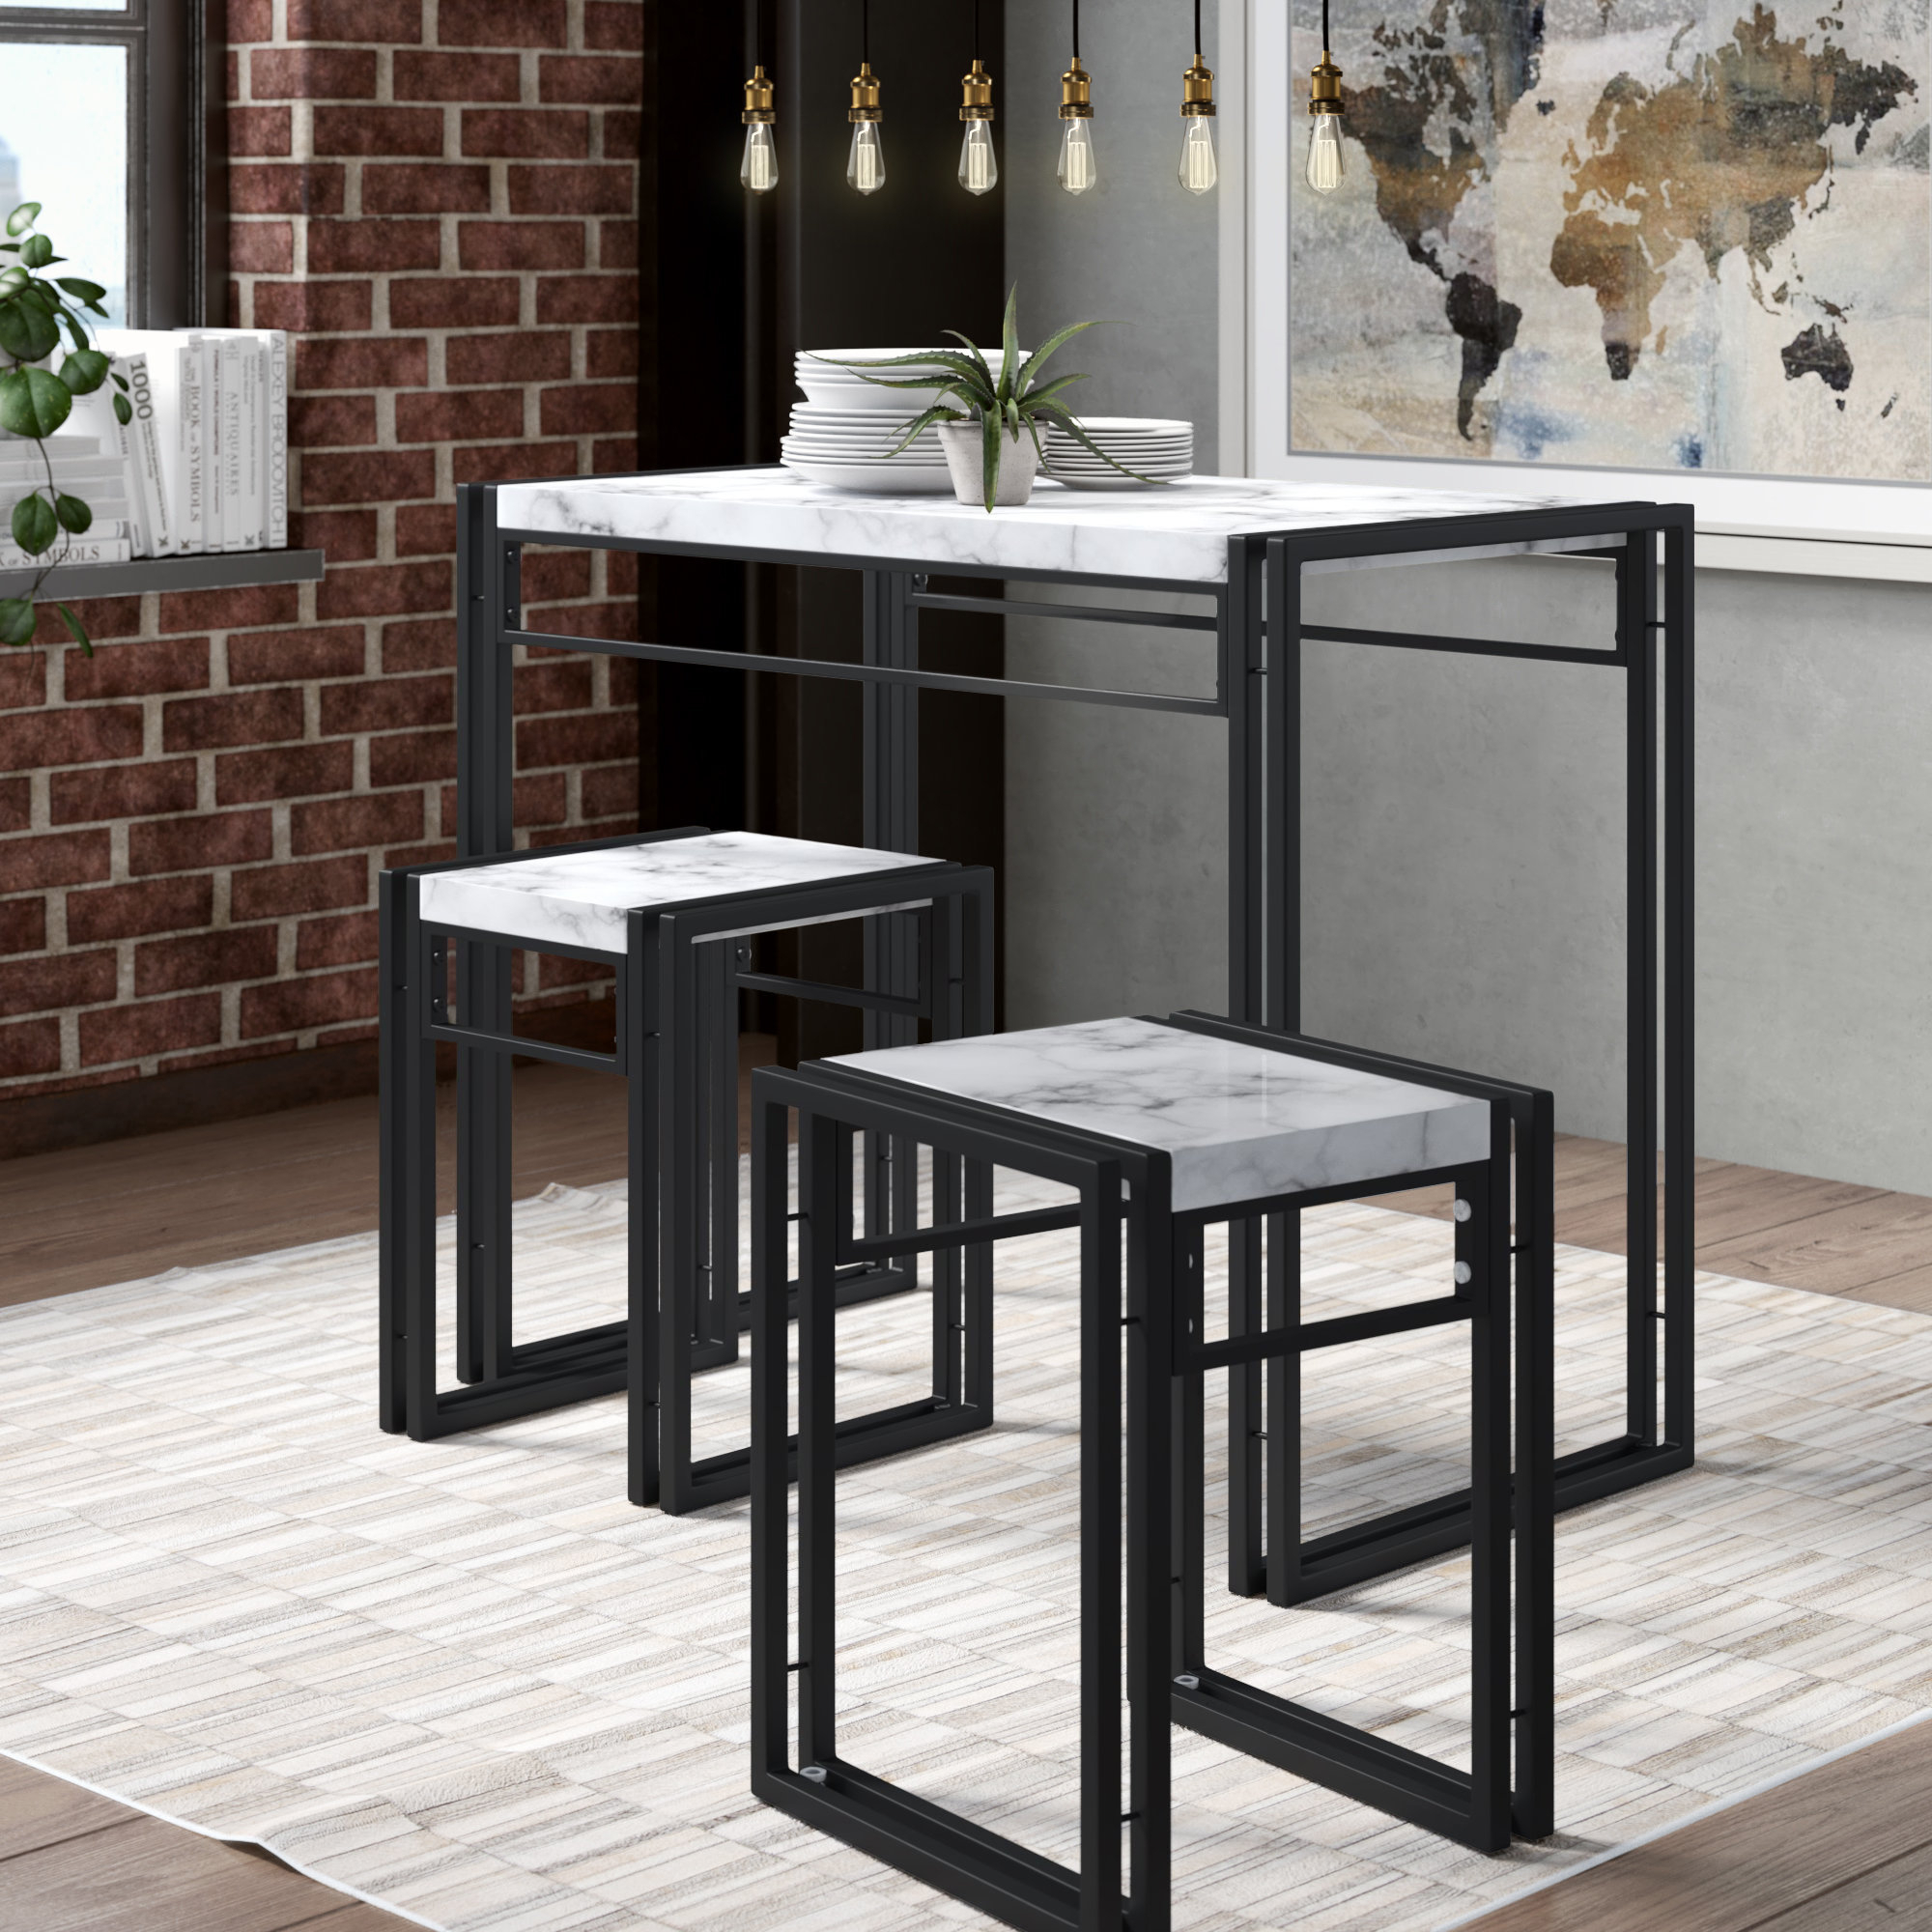 Debby Small Space 3 Piece Dining Set For Best And Newest Mitzel 3 Piece Dining Sets (Image 2 of 20)